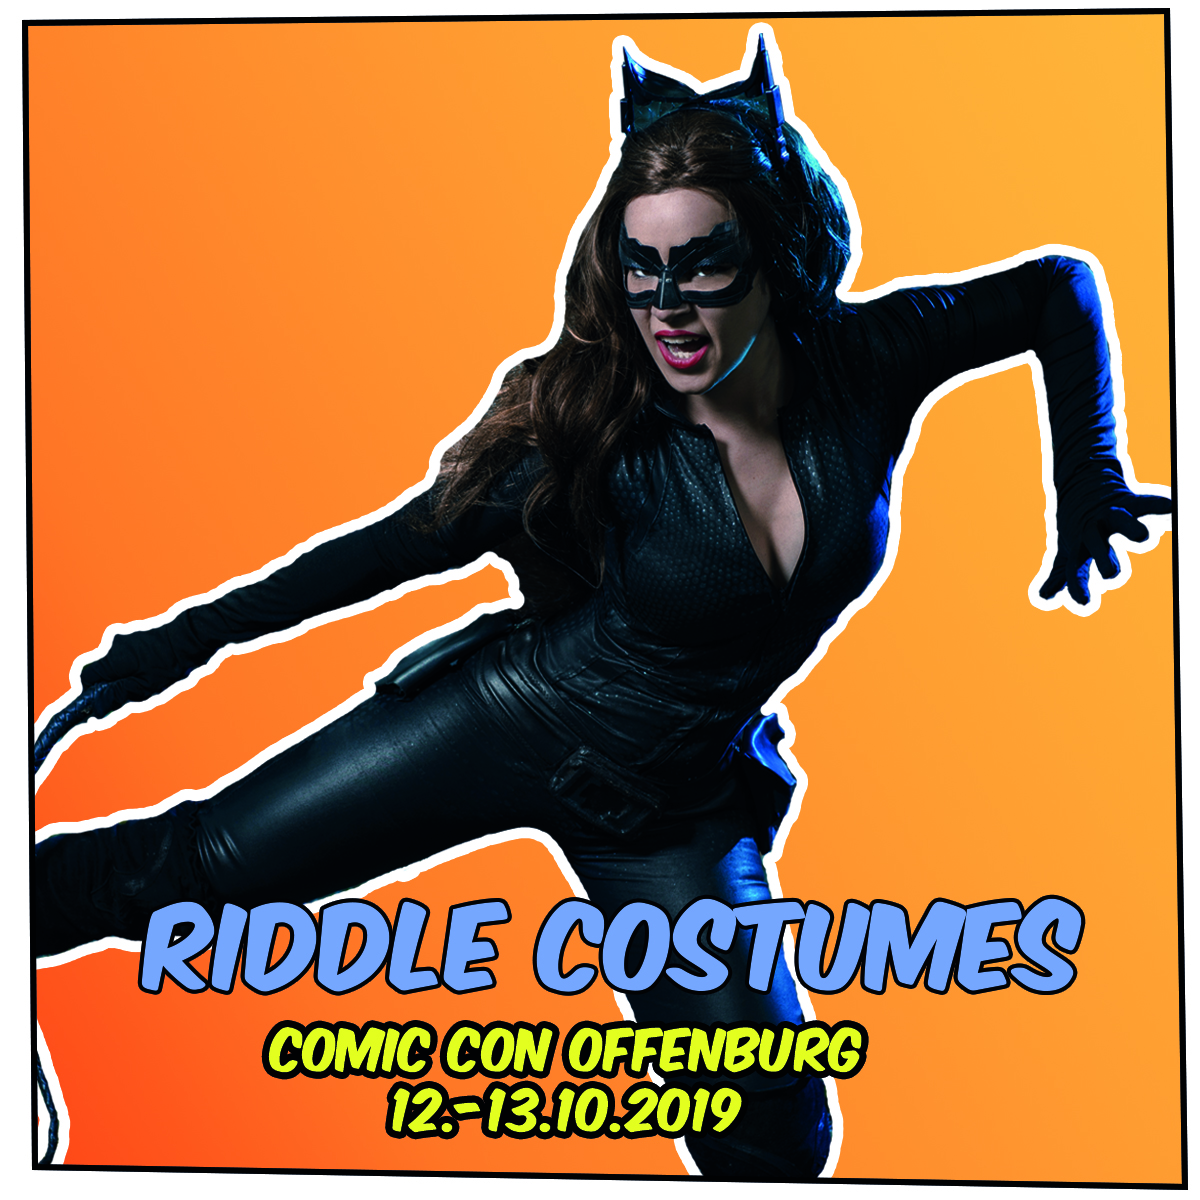 Riddle Costumes